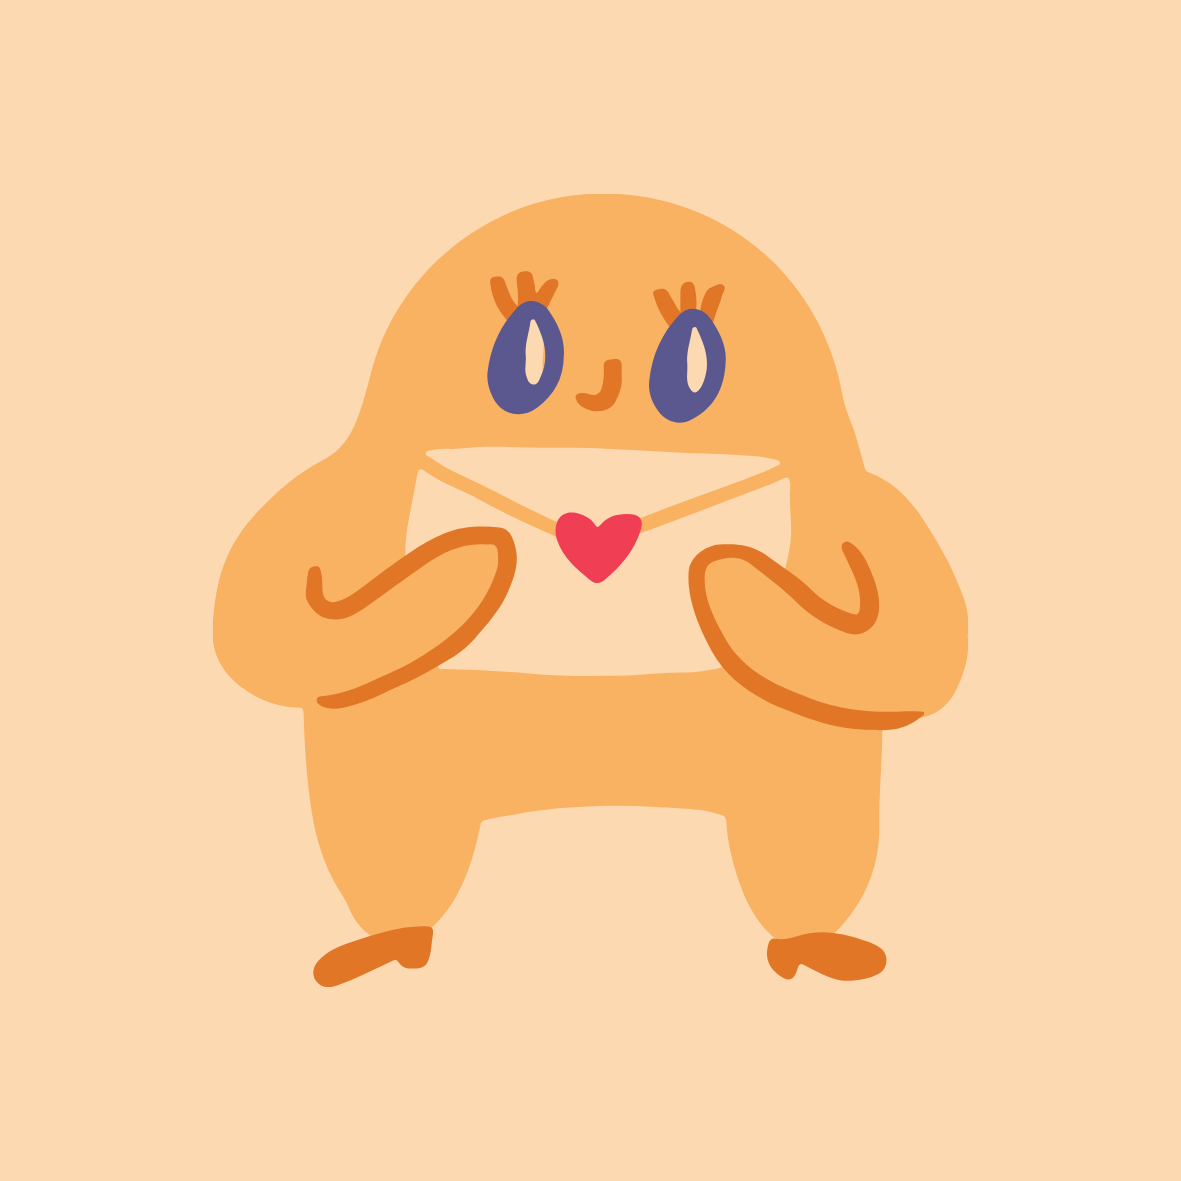 Red and Purple Love Monster Ghost Holding Heart Balloon Cute and Playful Circle Laptop Sticker (10).png